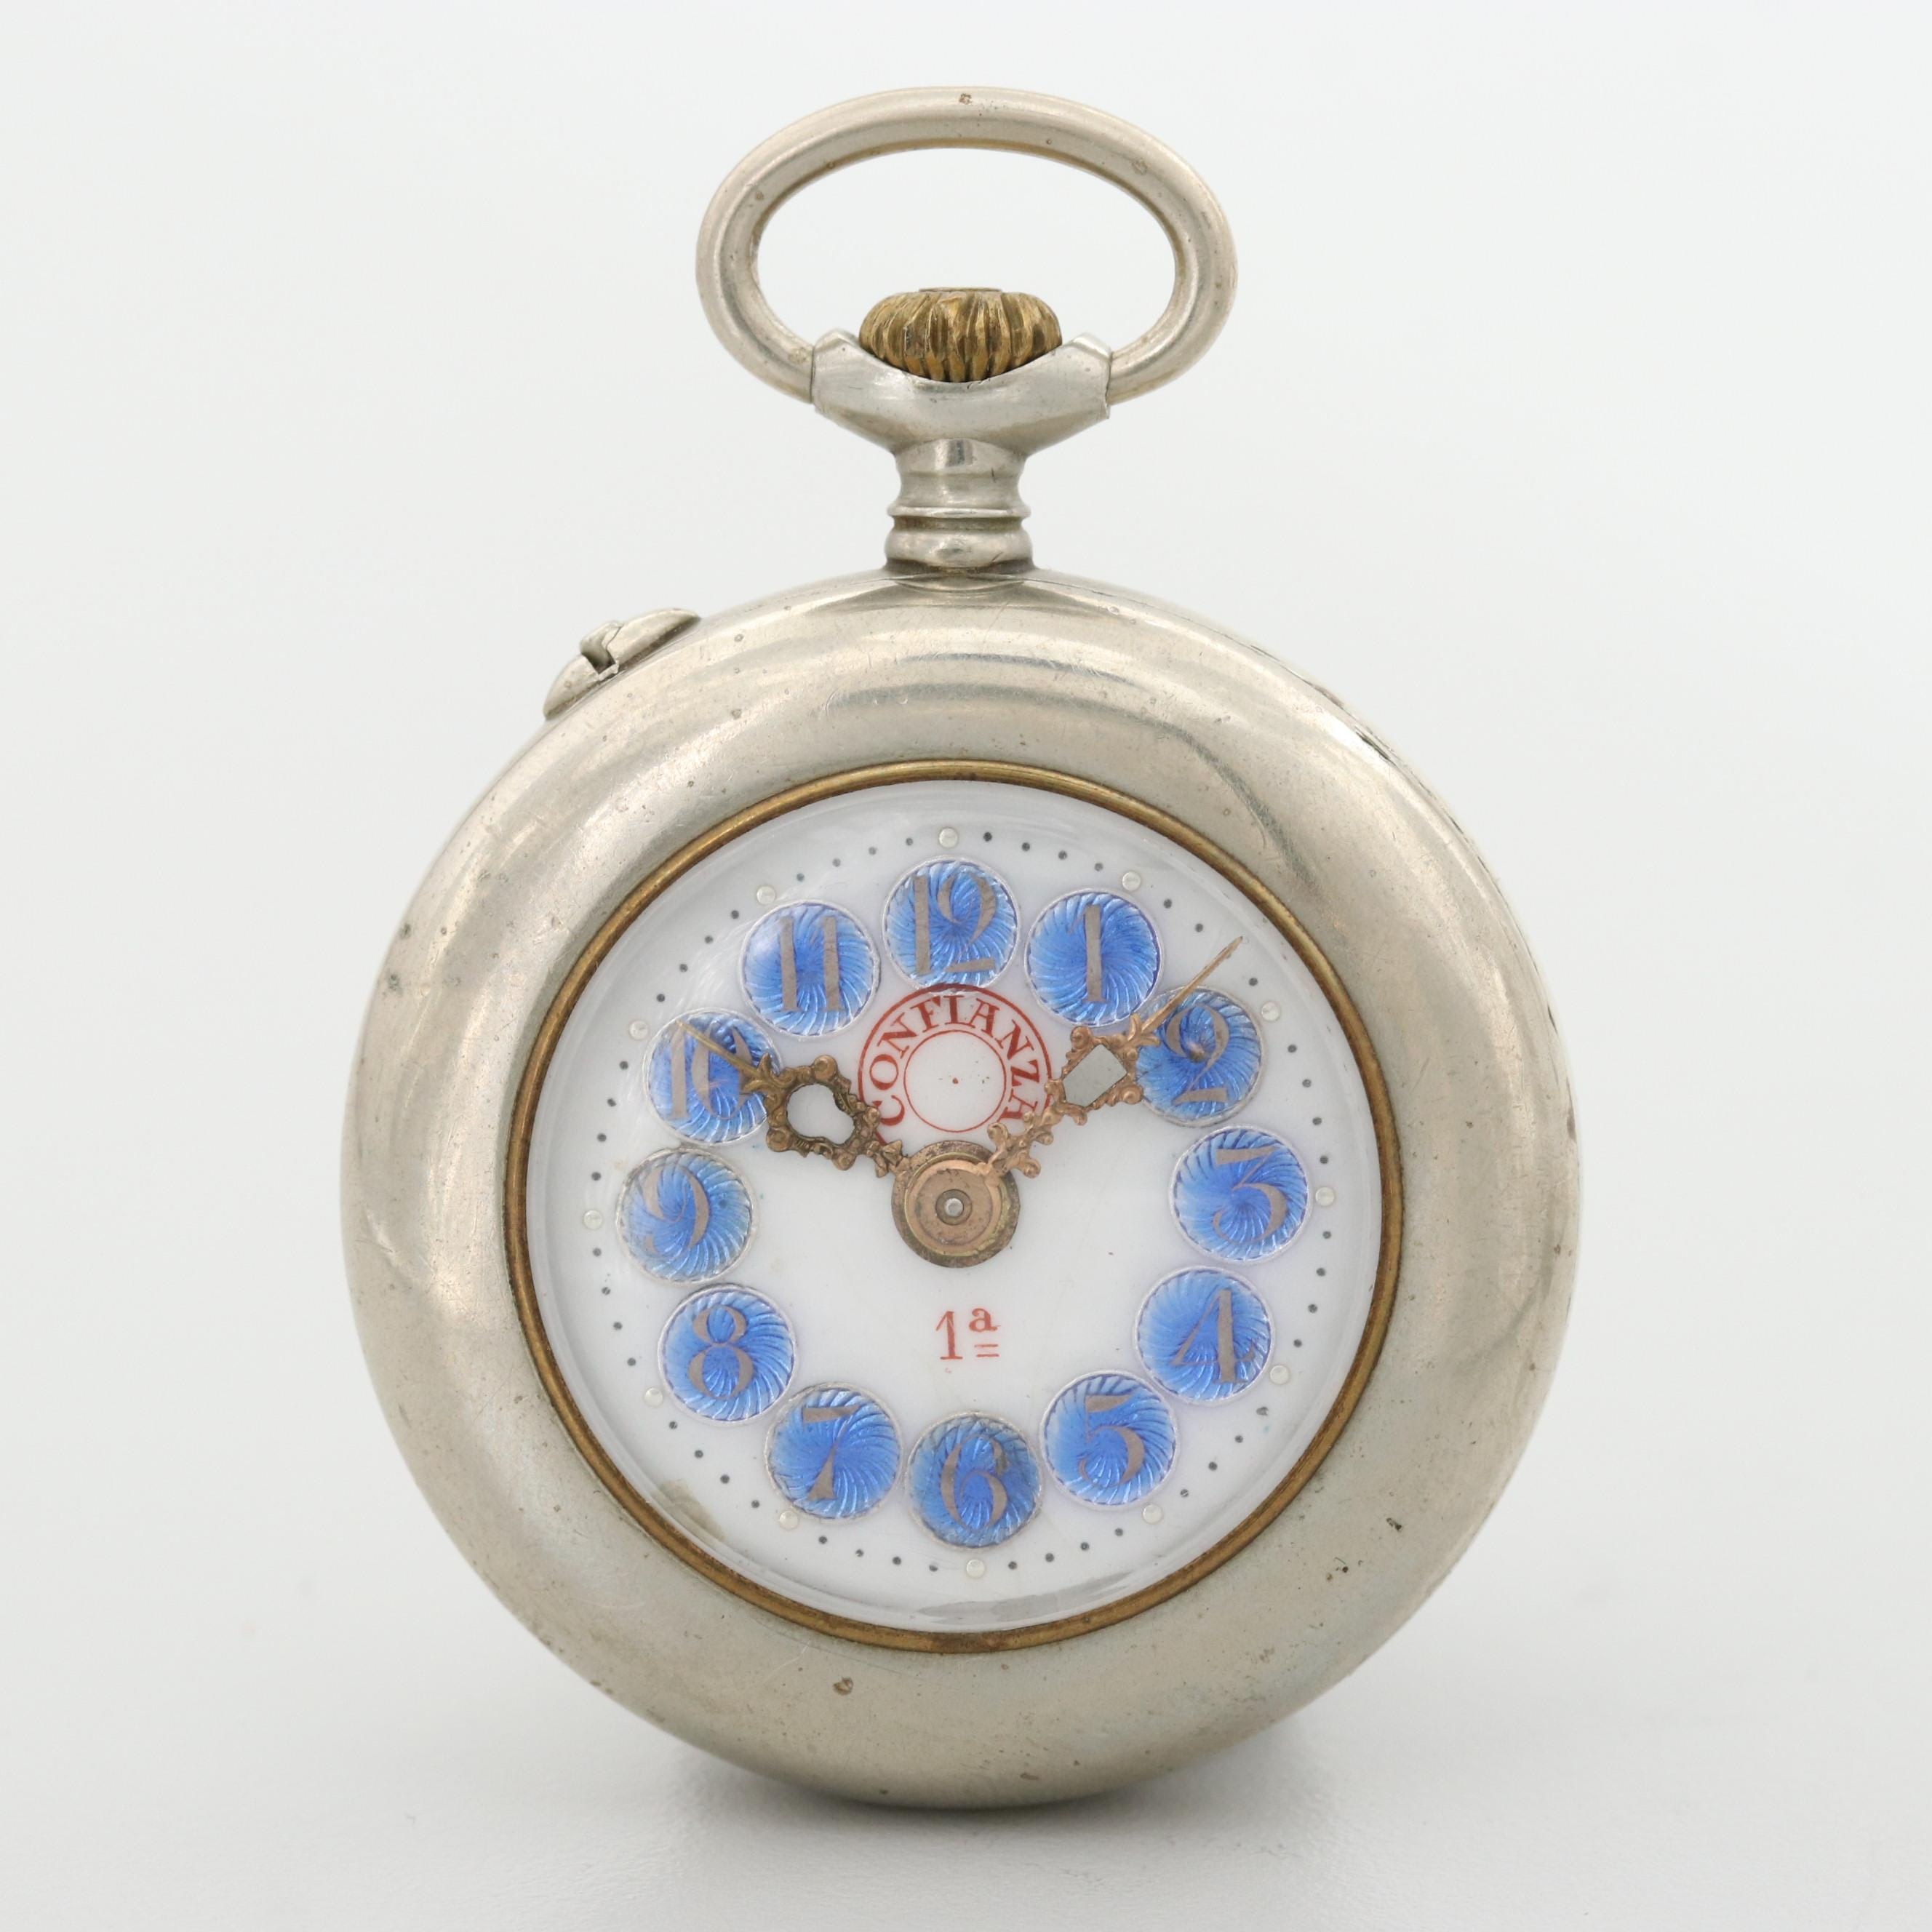 Antique Confianza 1a Nickel Open Face Pocket Watch With Porcelain and Enamel